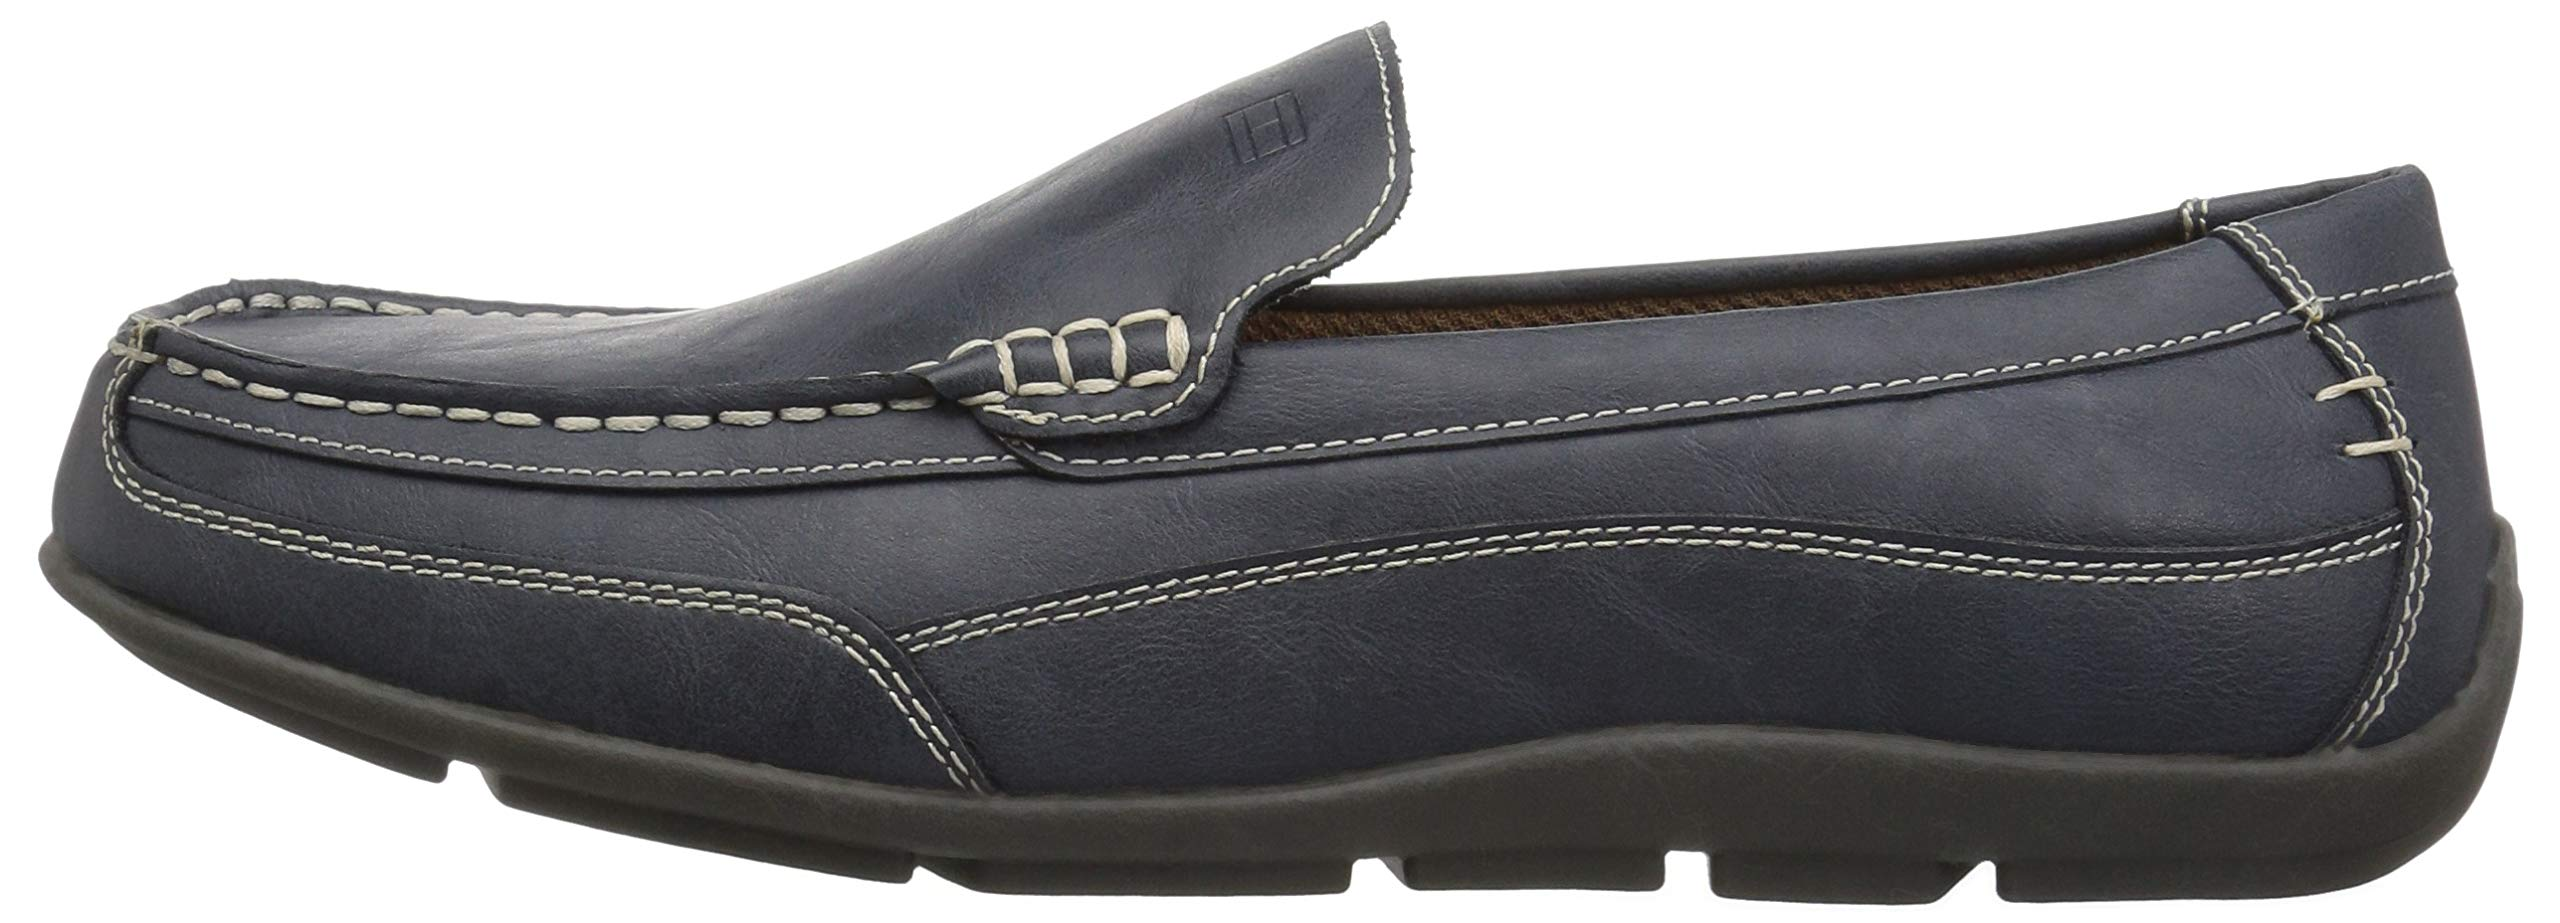 Tommy Hilfiger Men's DATHAN Shoe, navy, 11.5 Medium US by Tommy Hilfiger (Image #5)